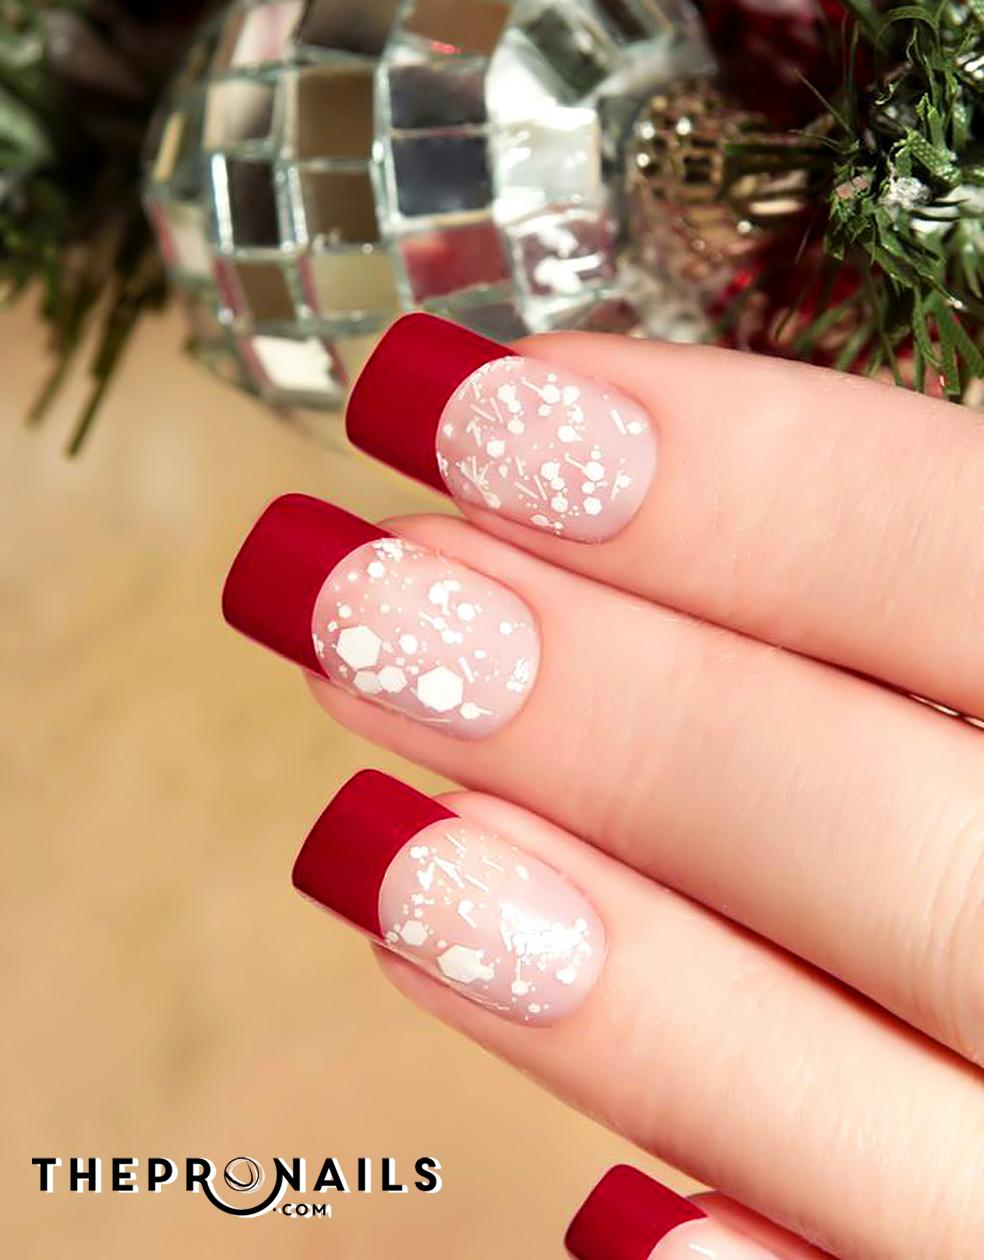 Thepronails acrylic nails your nail technician will mix a liquid with a powder and brush the mixture onto your nails theyll usually cover your entire nail prinsesfo Images